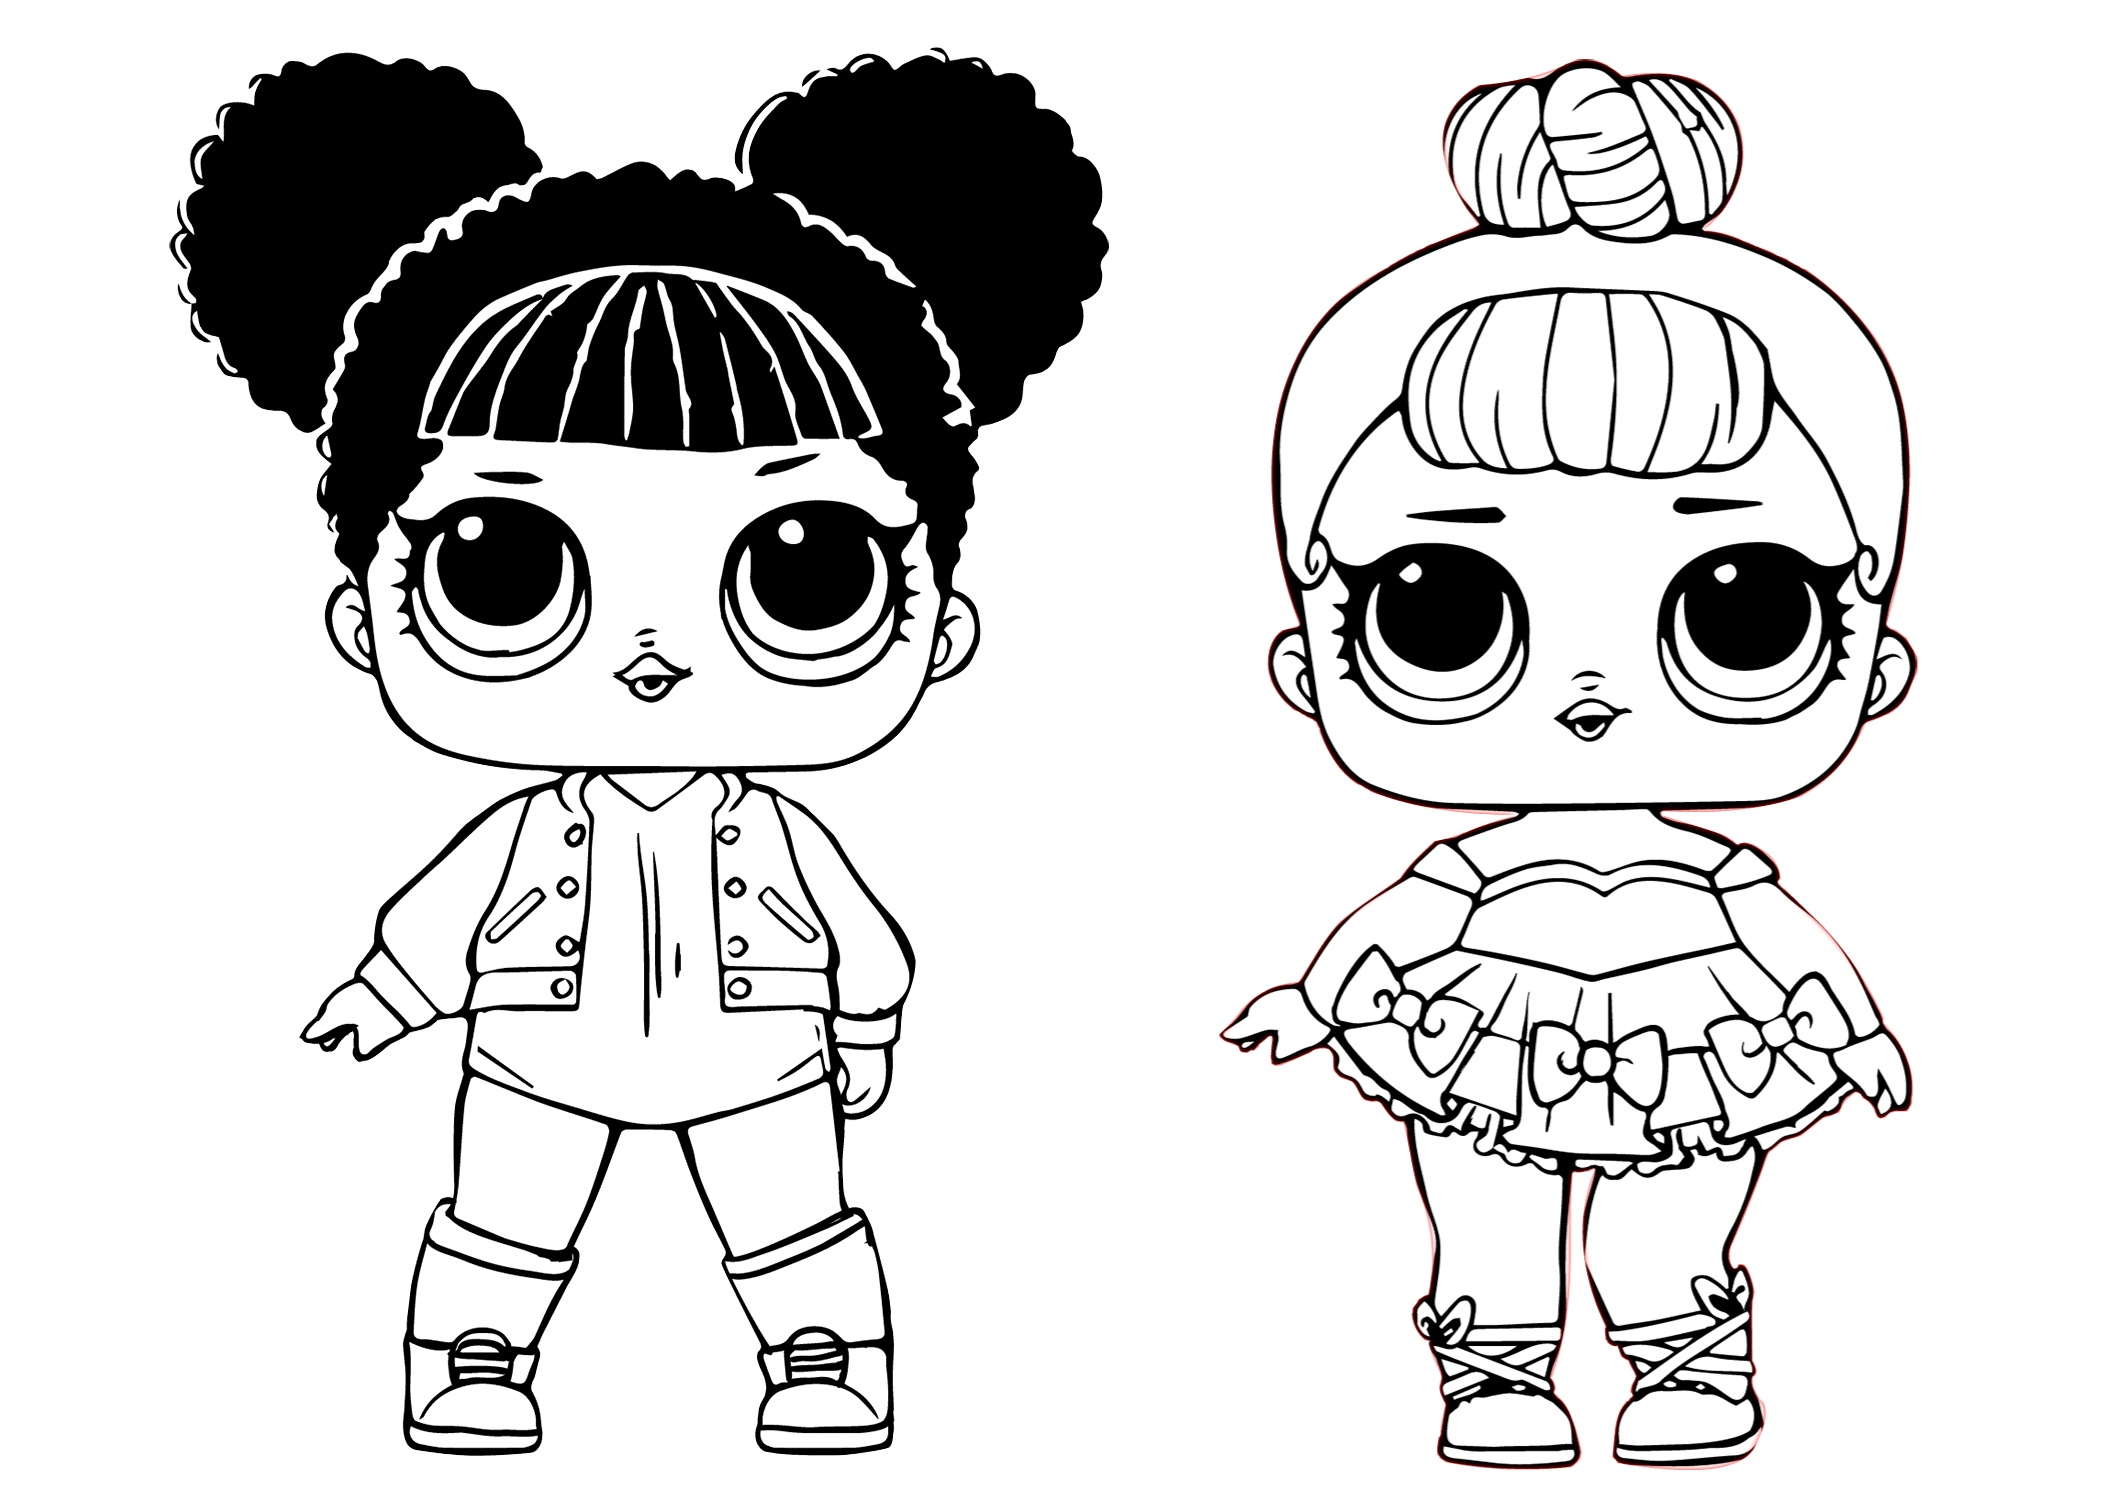 Glitter Baby and Hoops Basketball Player LOL Dolls Coloring Pages